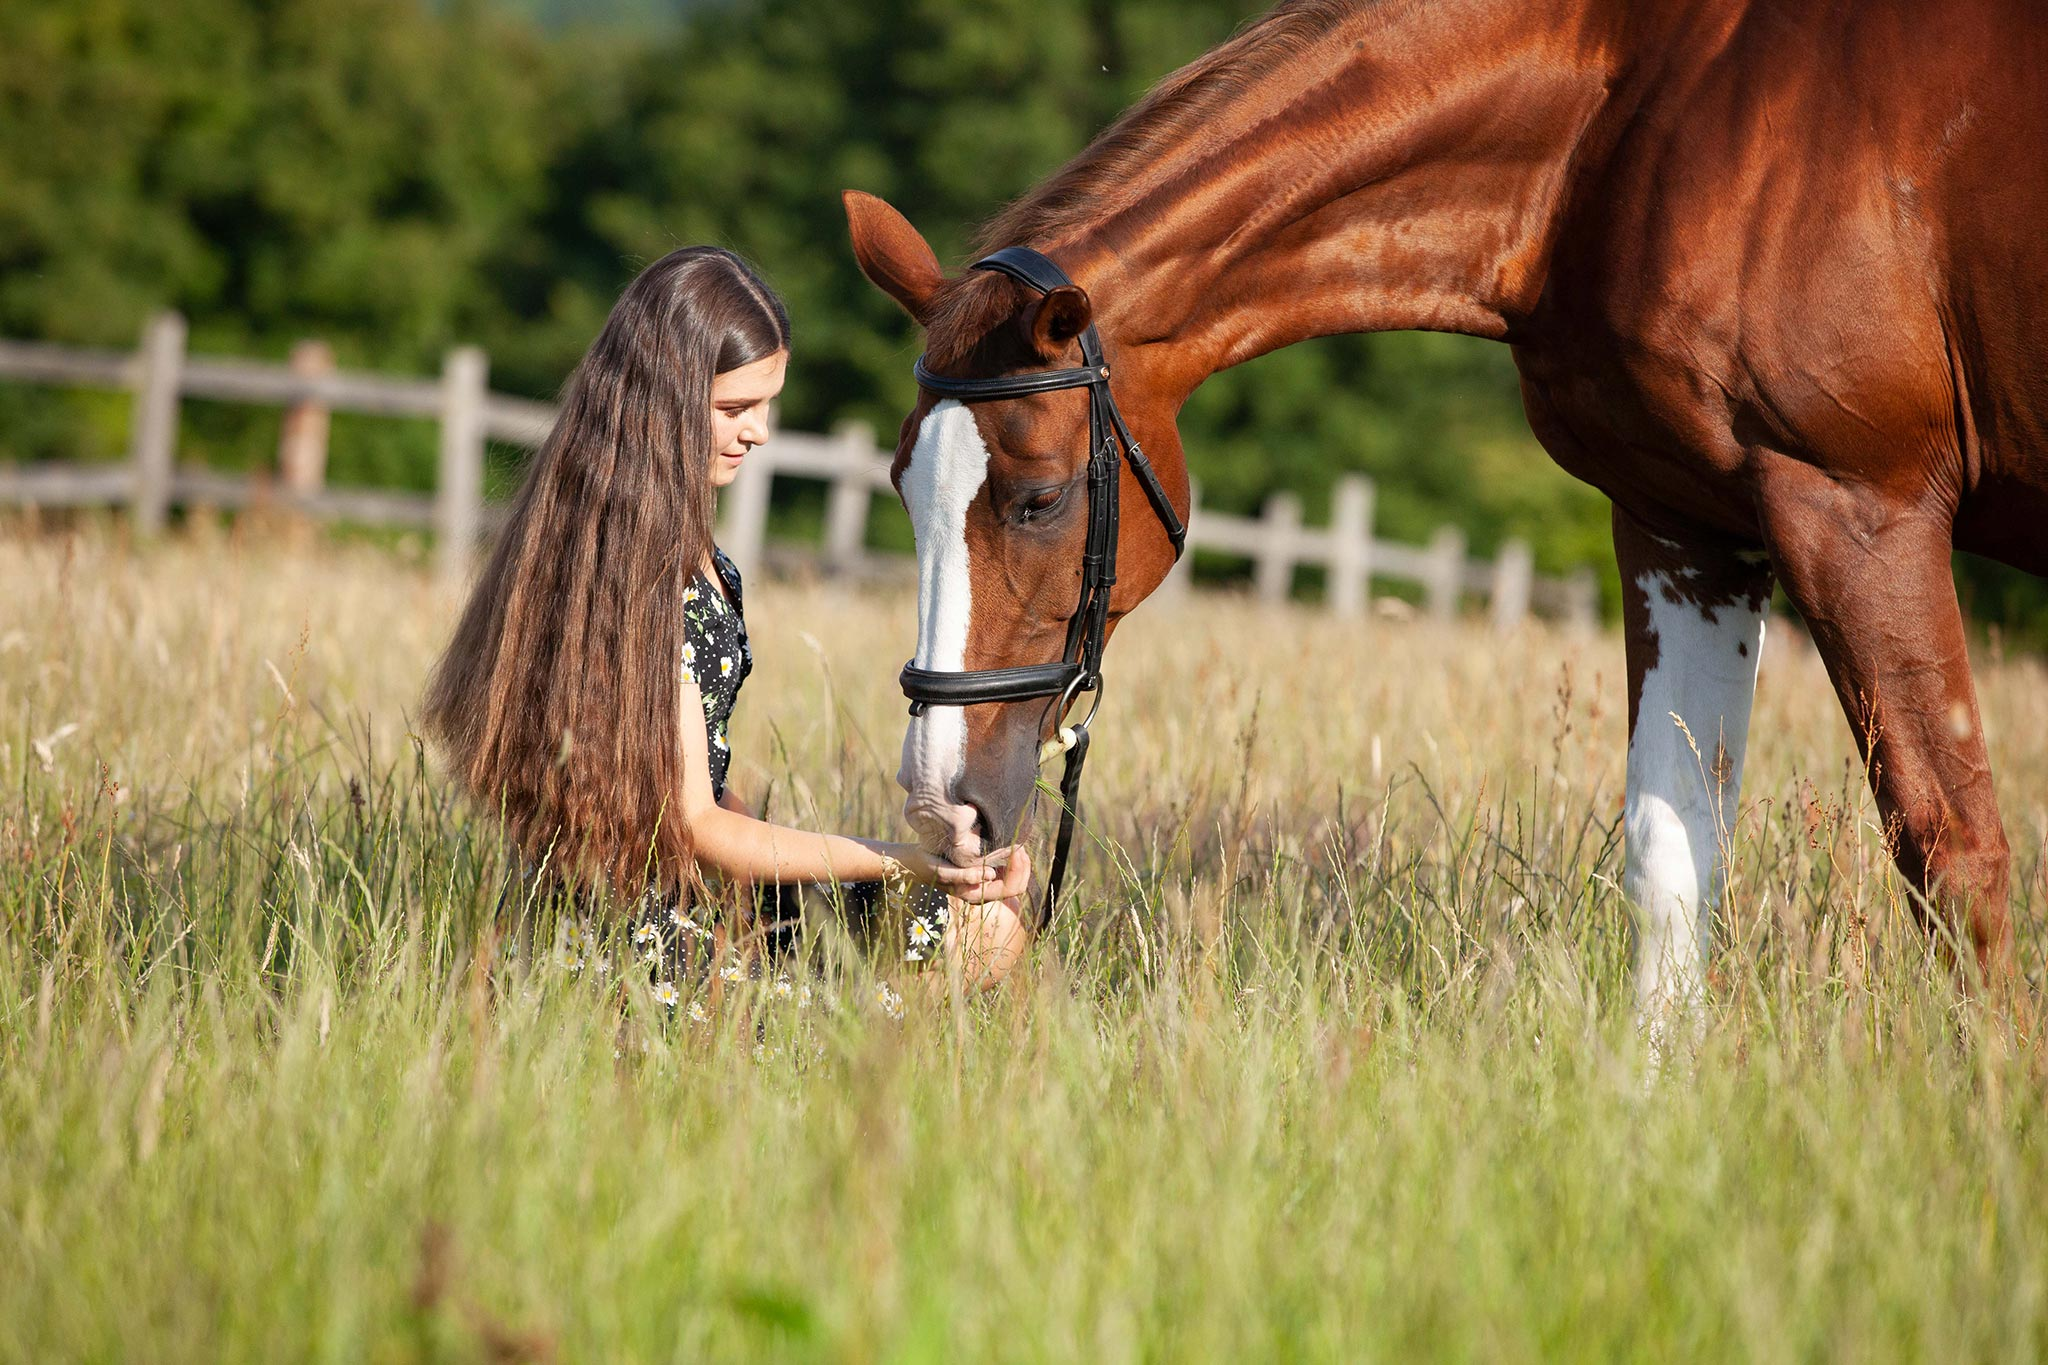 A girl in a field with long brown hair and a horse